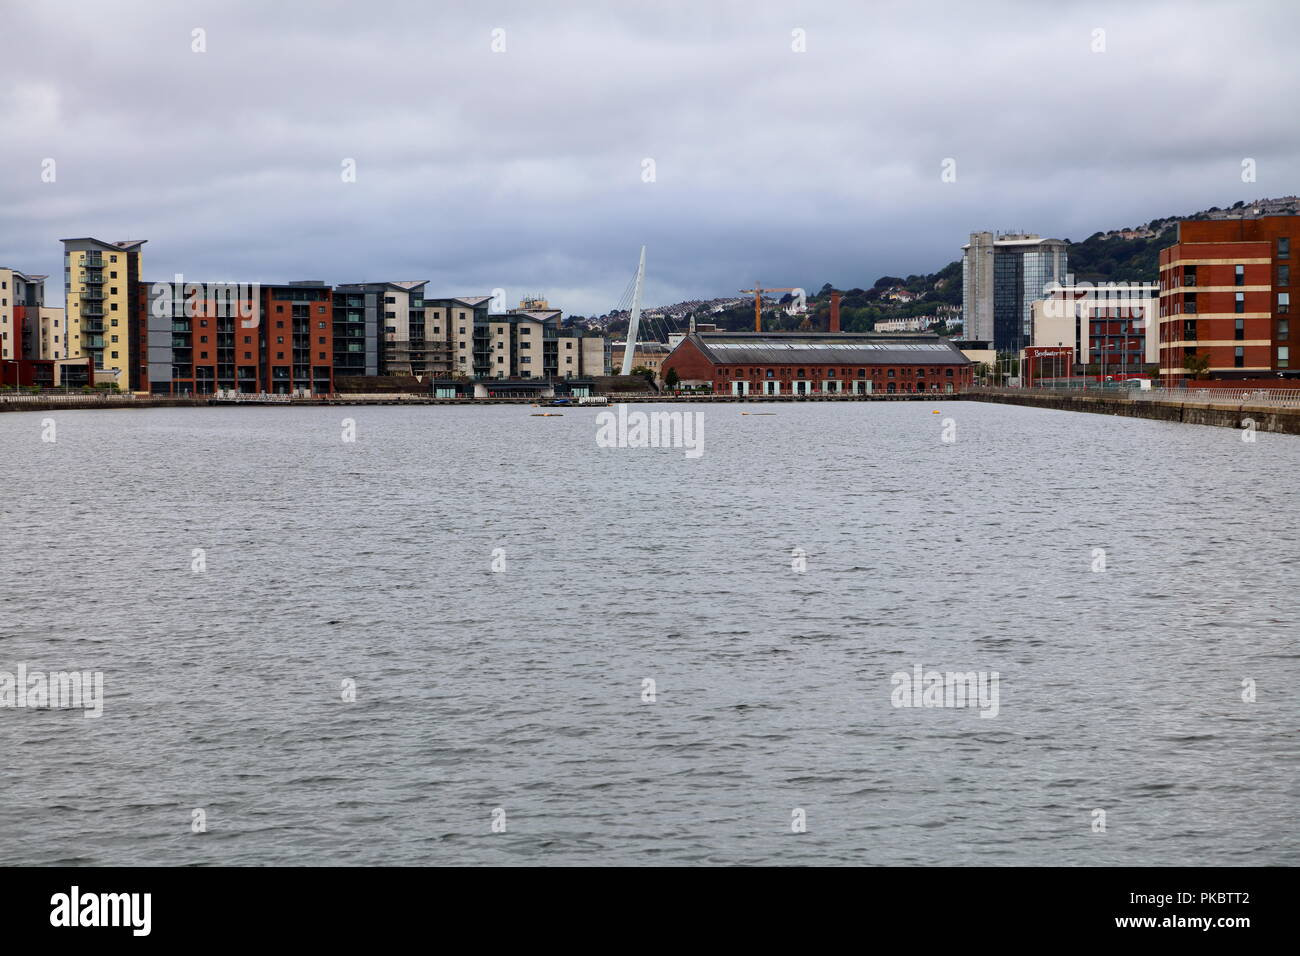 The Prince of Wales Doc now surrounded on three sides by new build flats with a wharehouse at the far end situated on the outskirts of Swansea. - Stock Image